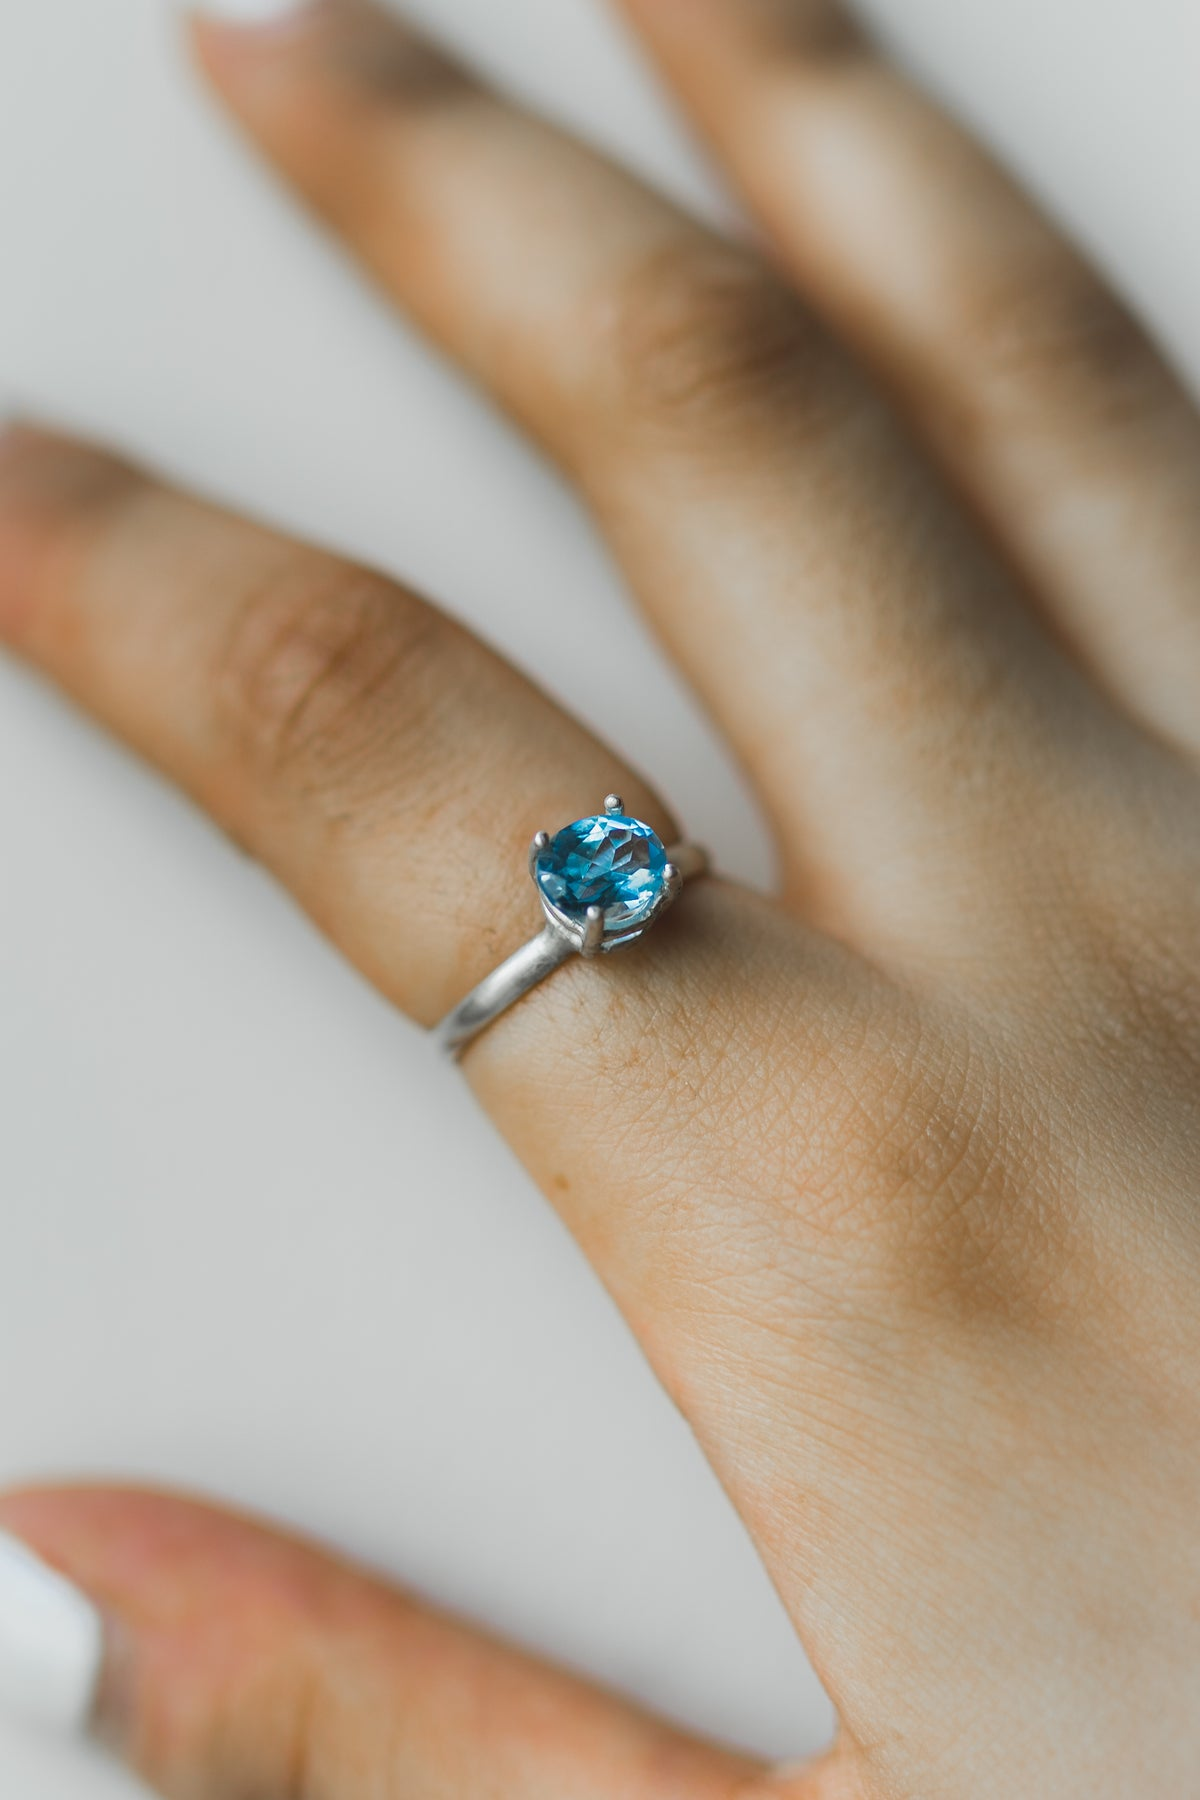 GLOWING Blue Sapphire ring